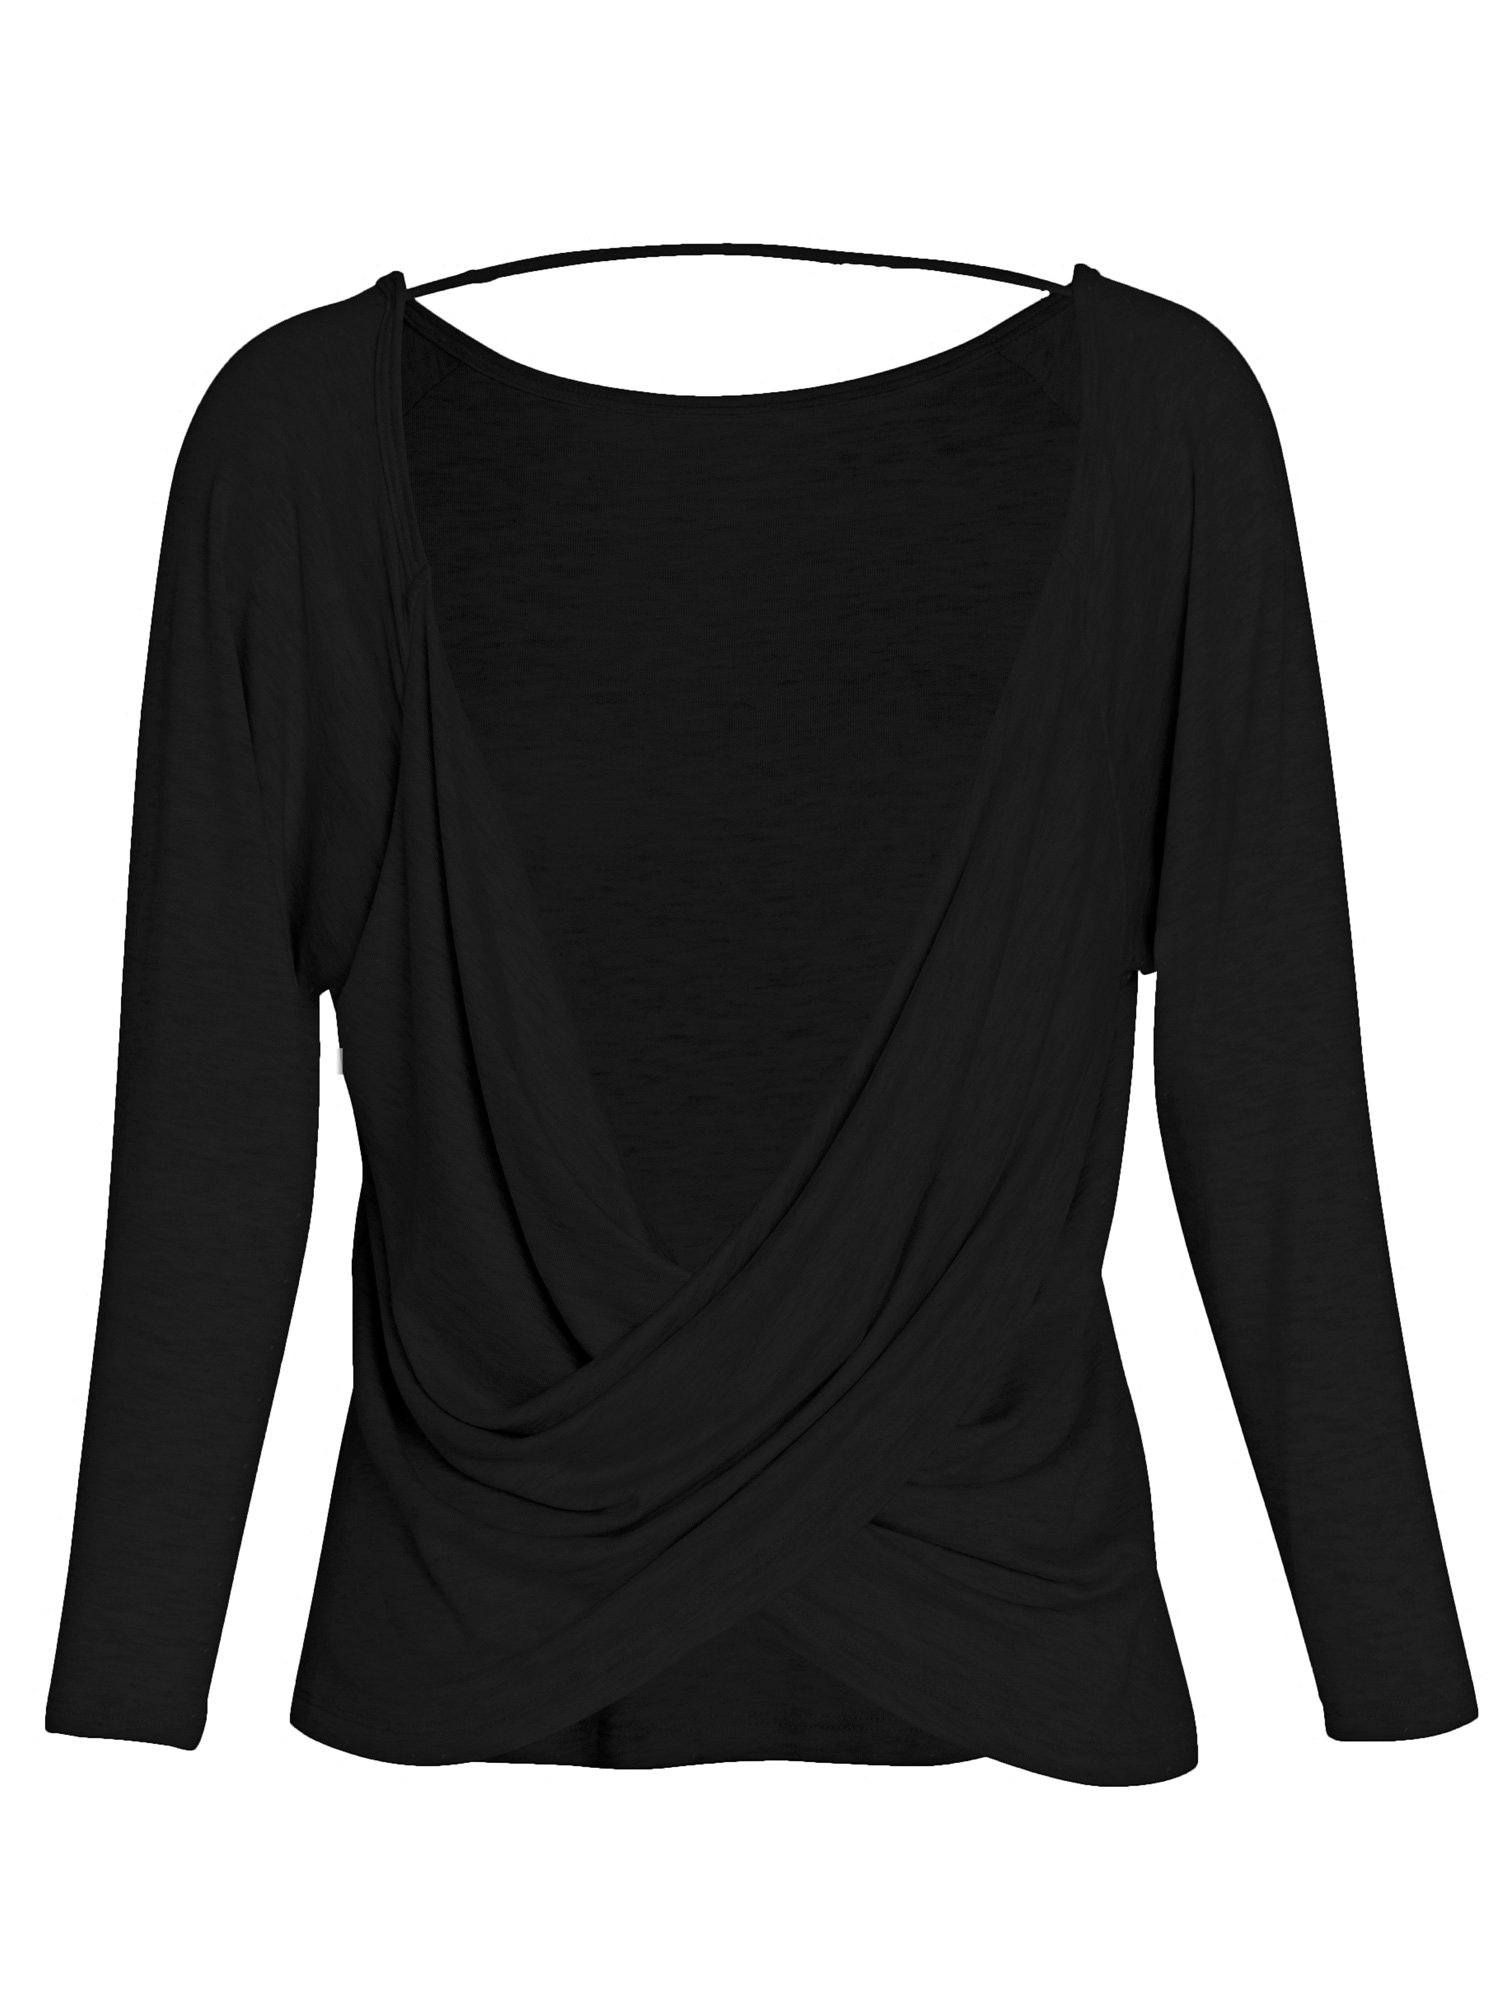 Ava Twist Back Top Tops by Le Marché by NP